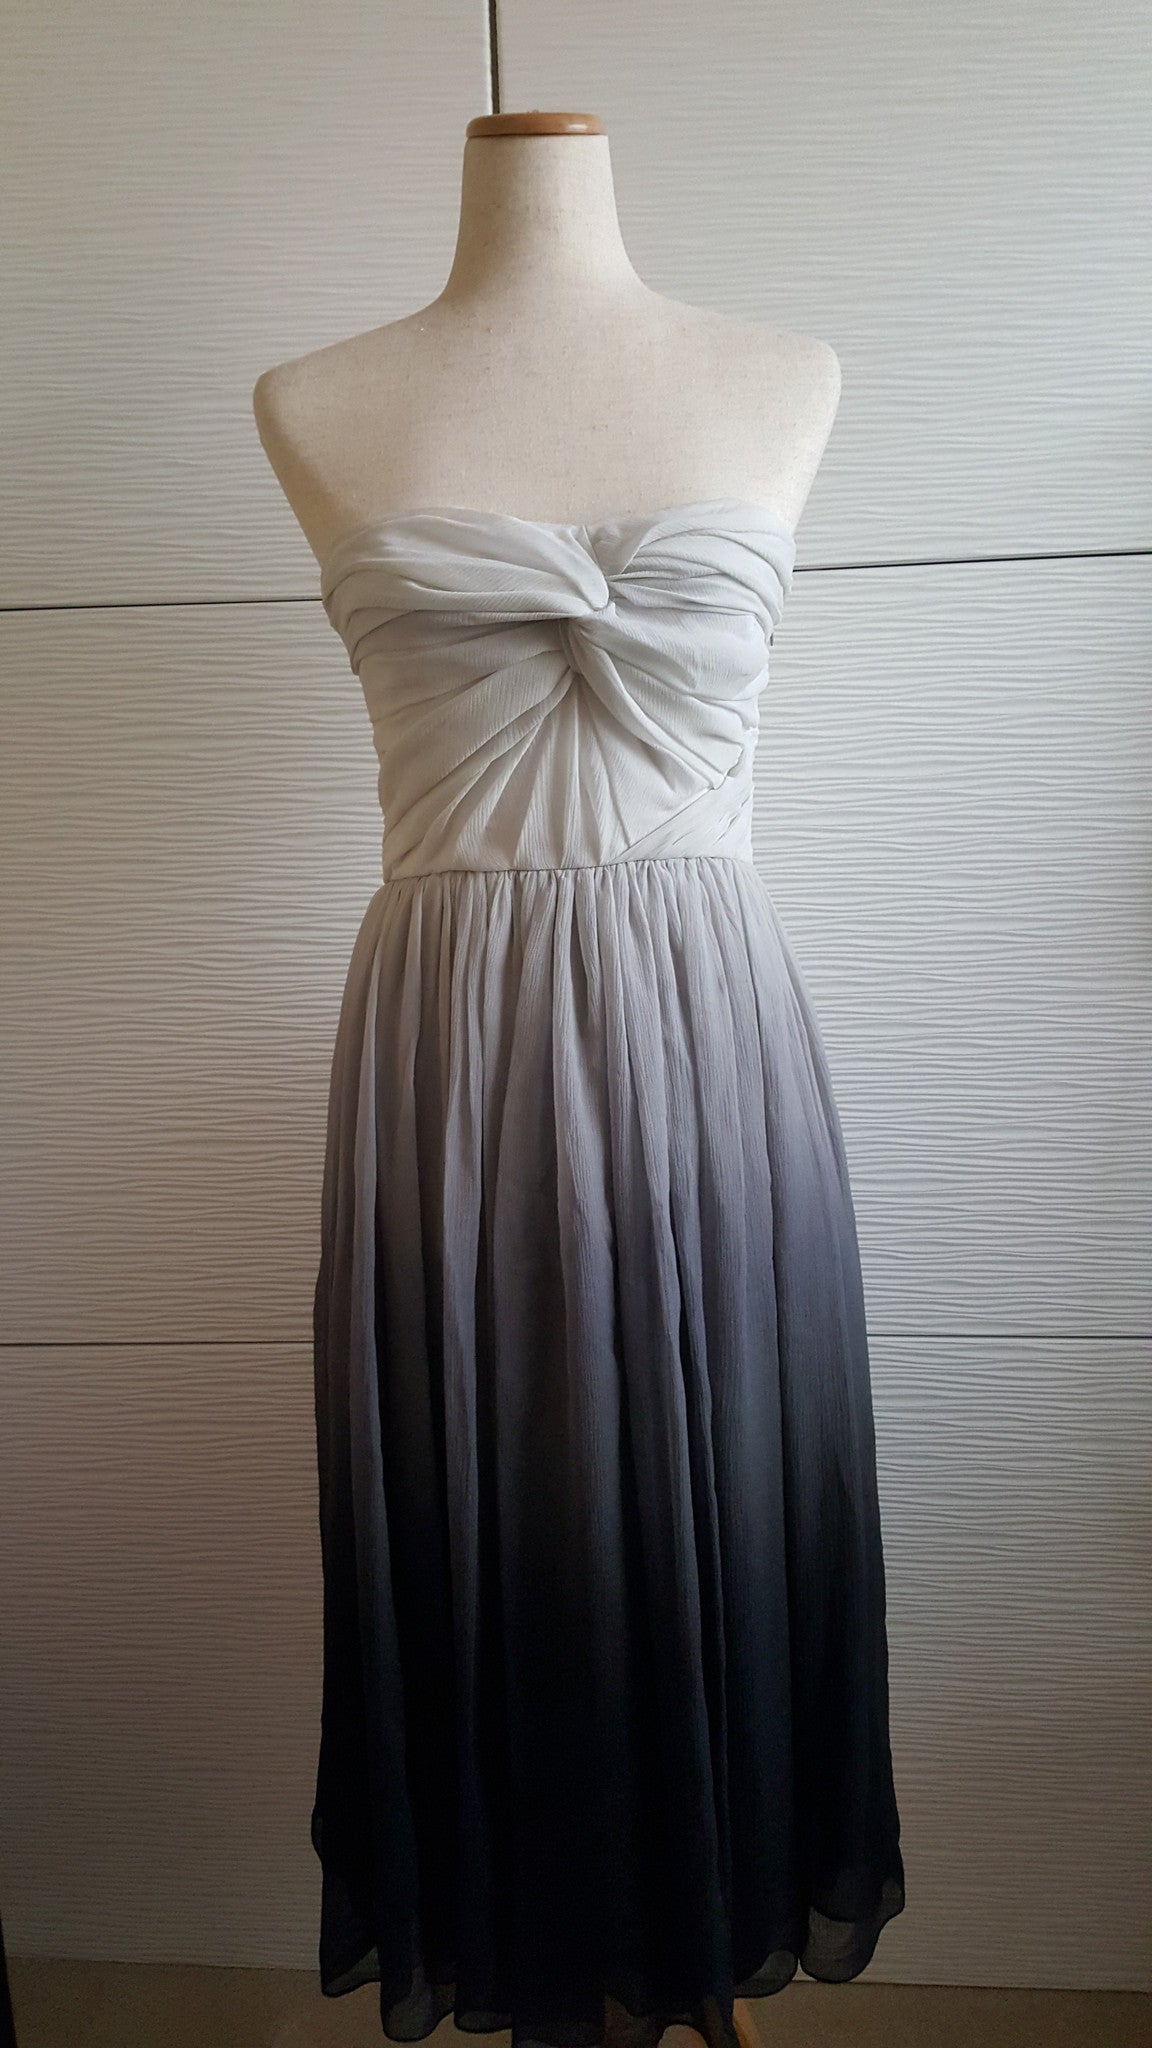 BURBERRY LONDON SILK GRAY OMBRE SLEEVELESS DRESS - SIZE US 6